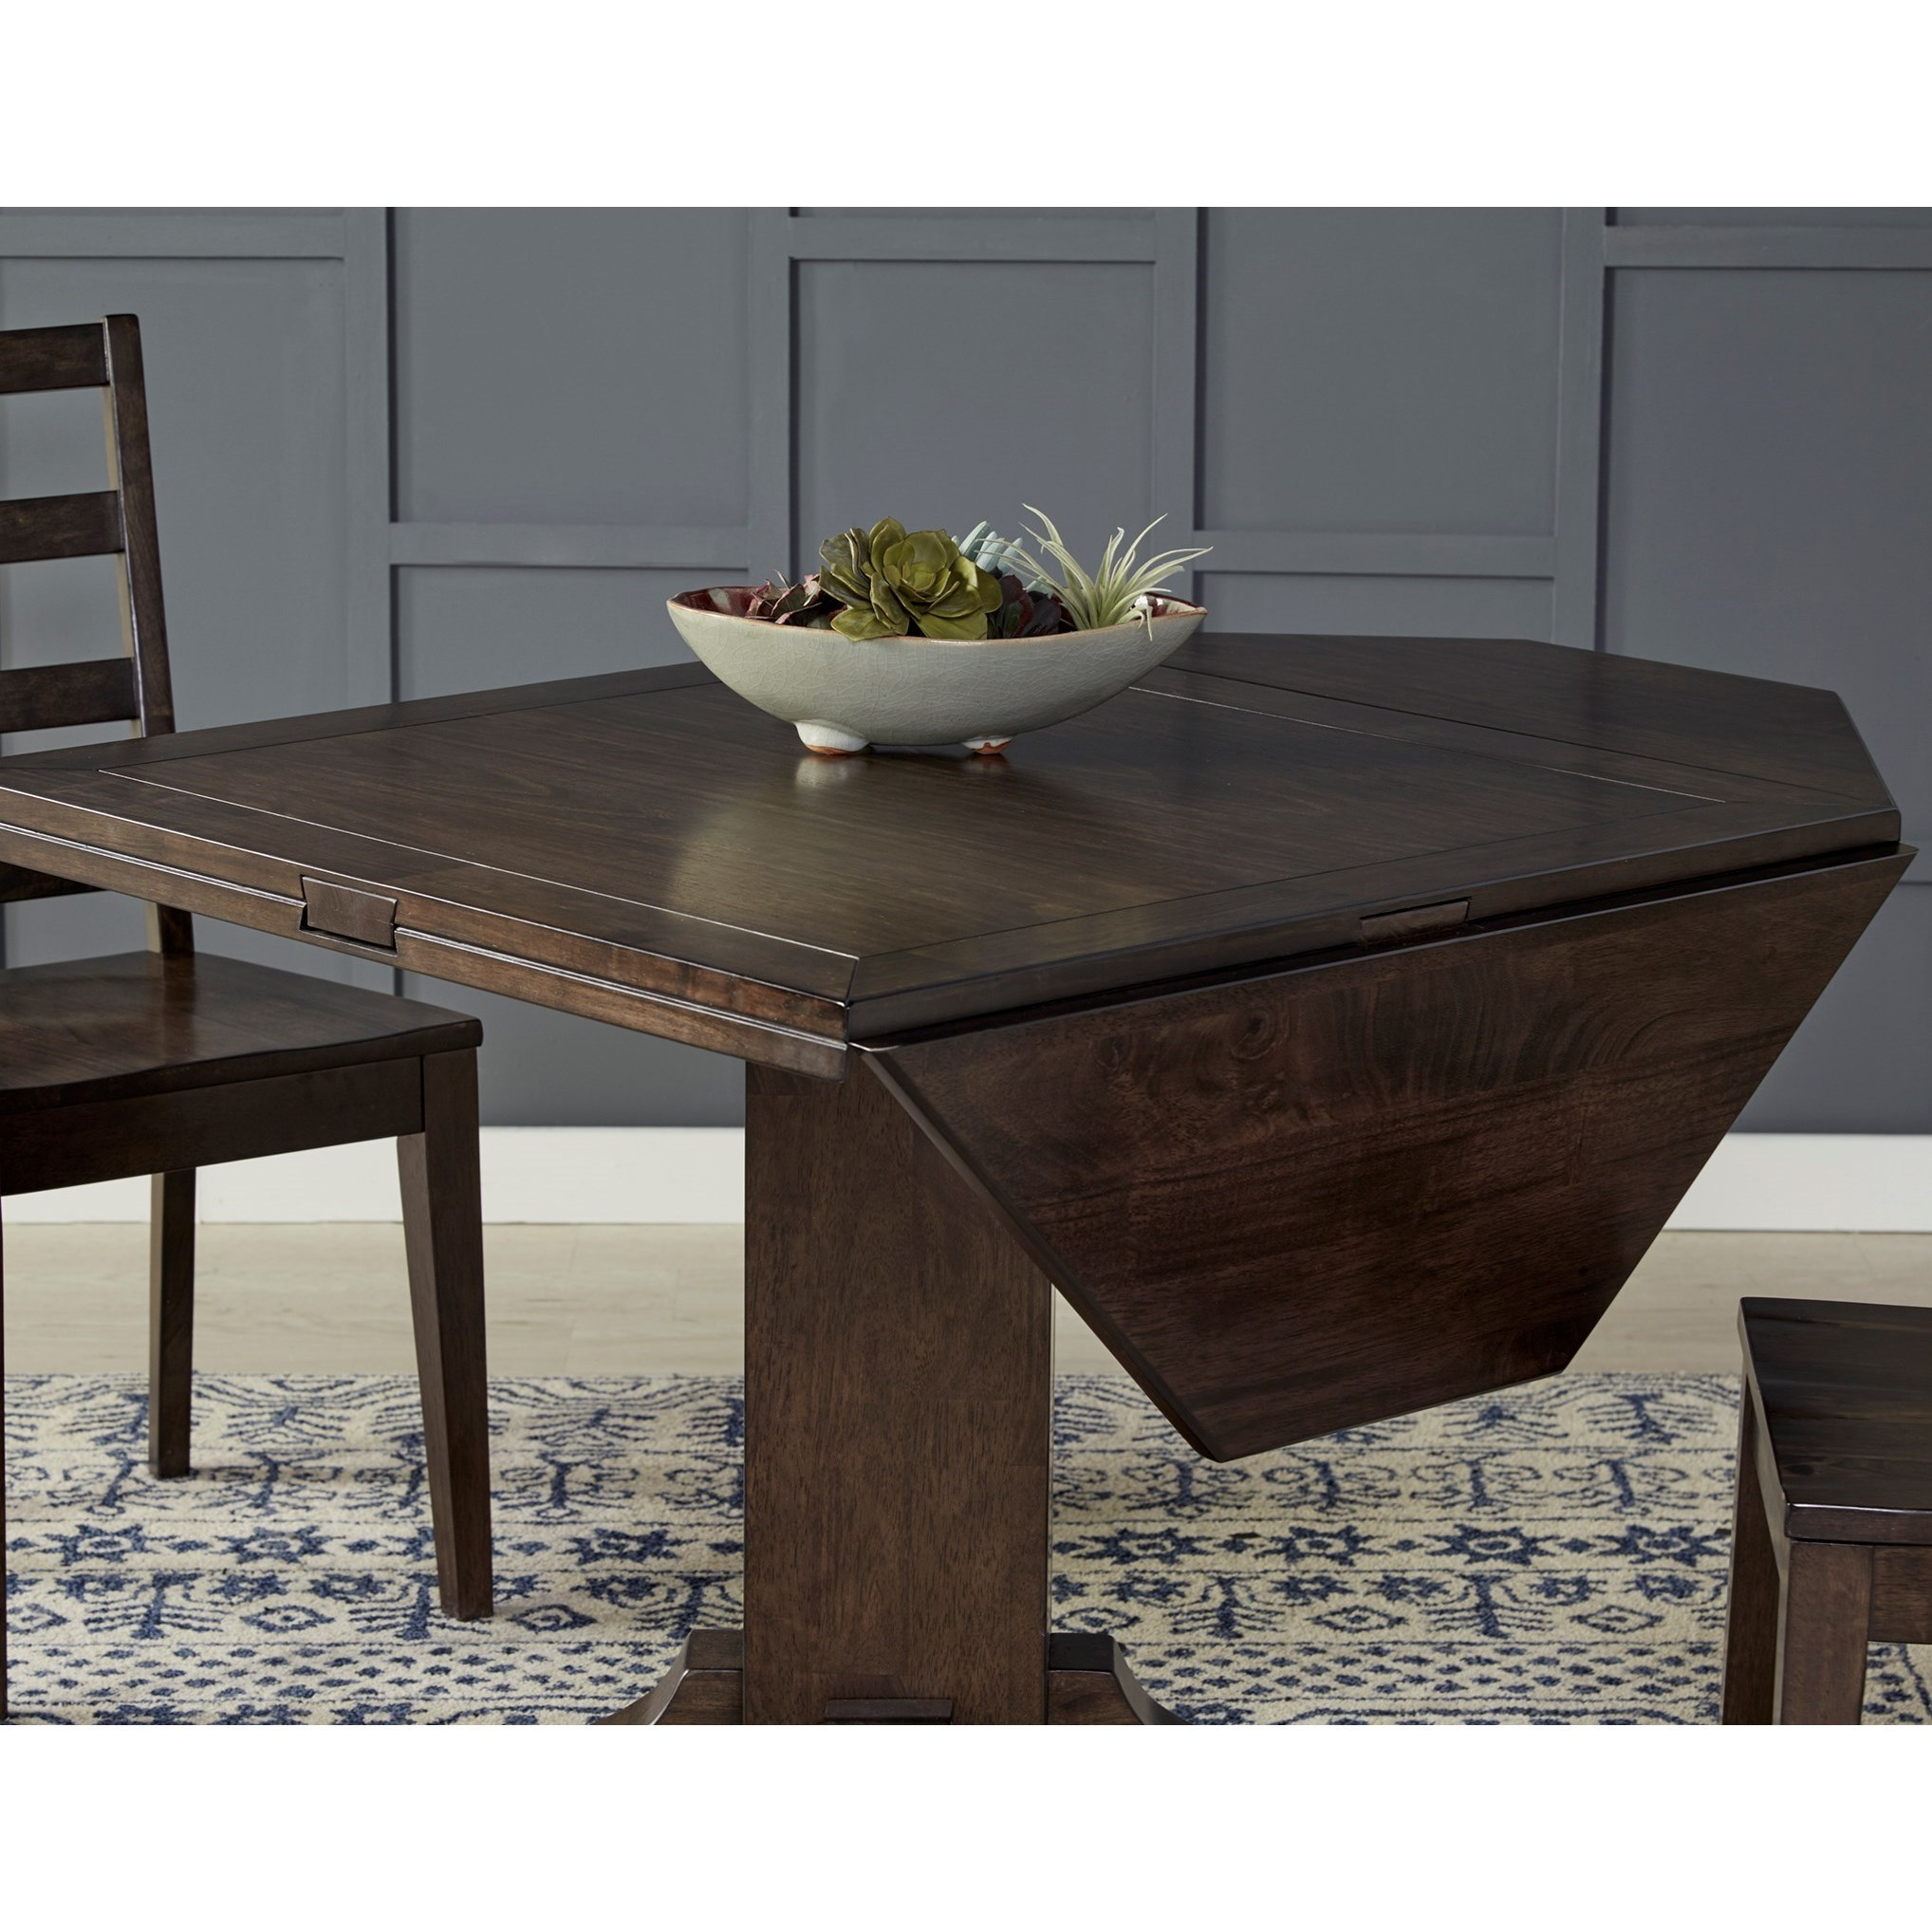 AAmerica Brooklyn Heights Drop Leaf Dining Table